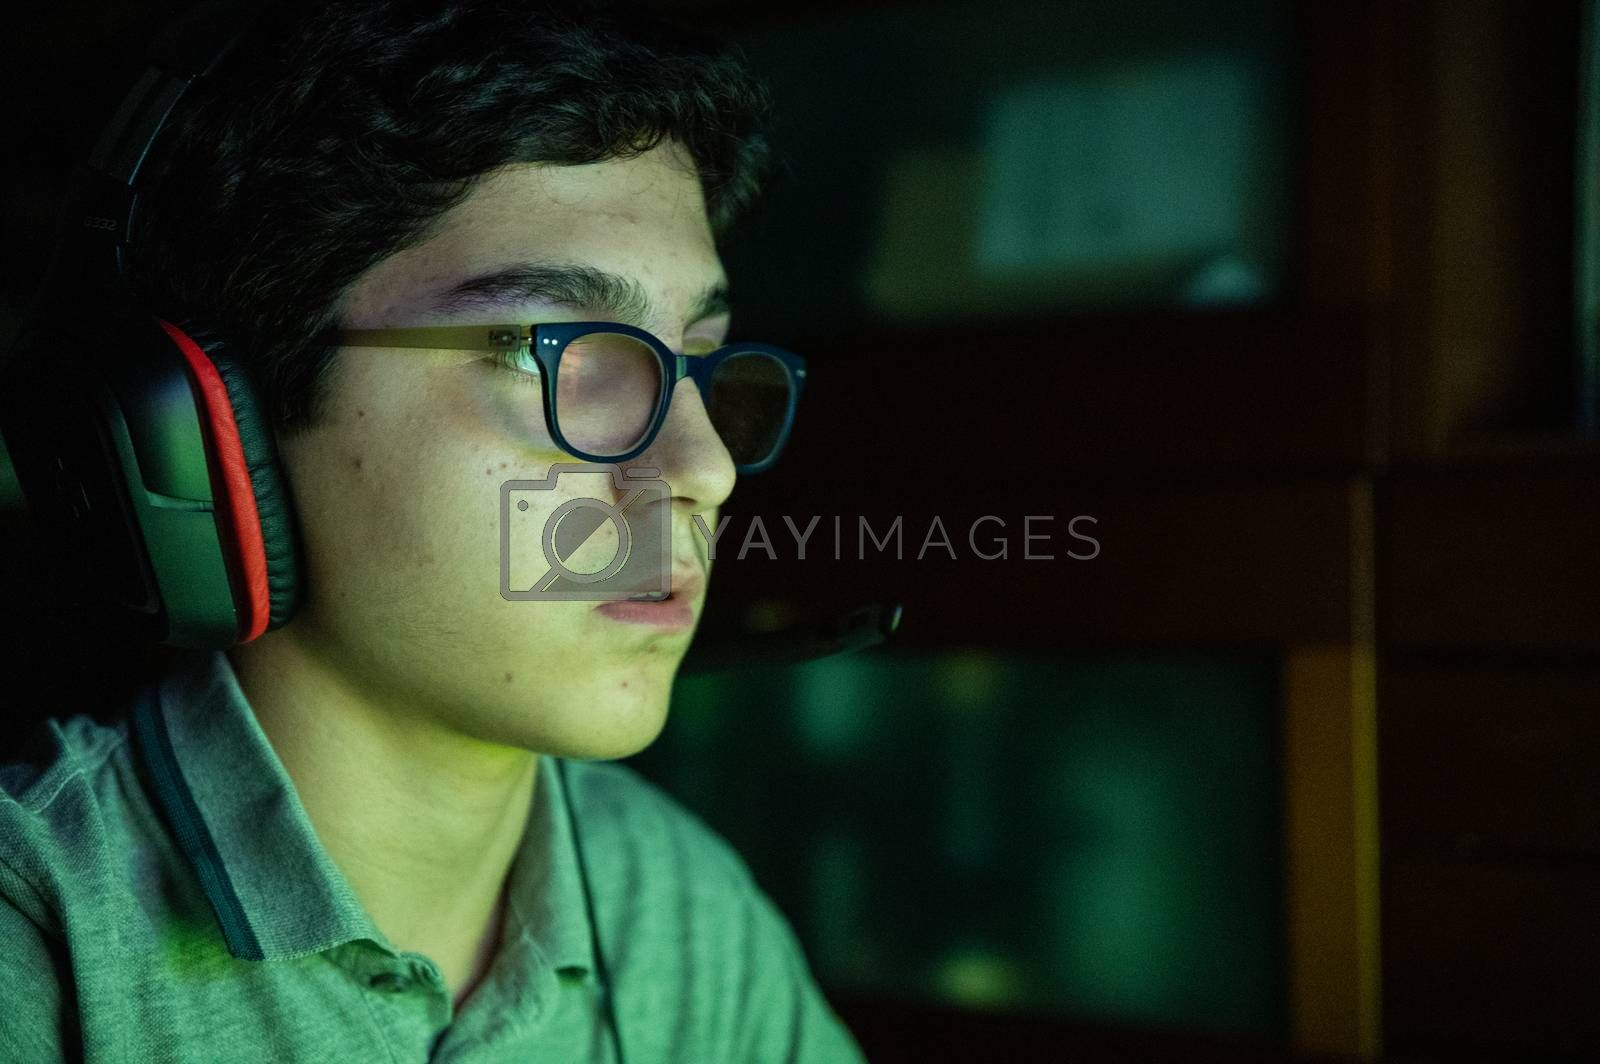 Game action during a video gaming session. The Caucasian boy with wavy black hair and glasses has his face illuminated by the changing colors of the screen during the game. Wear gaming headphones.